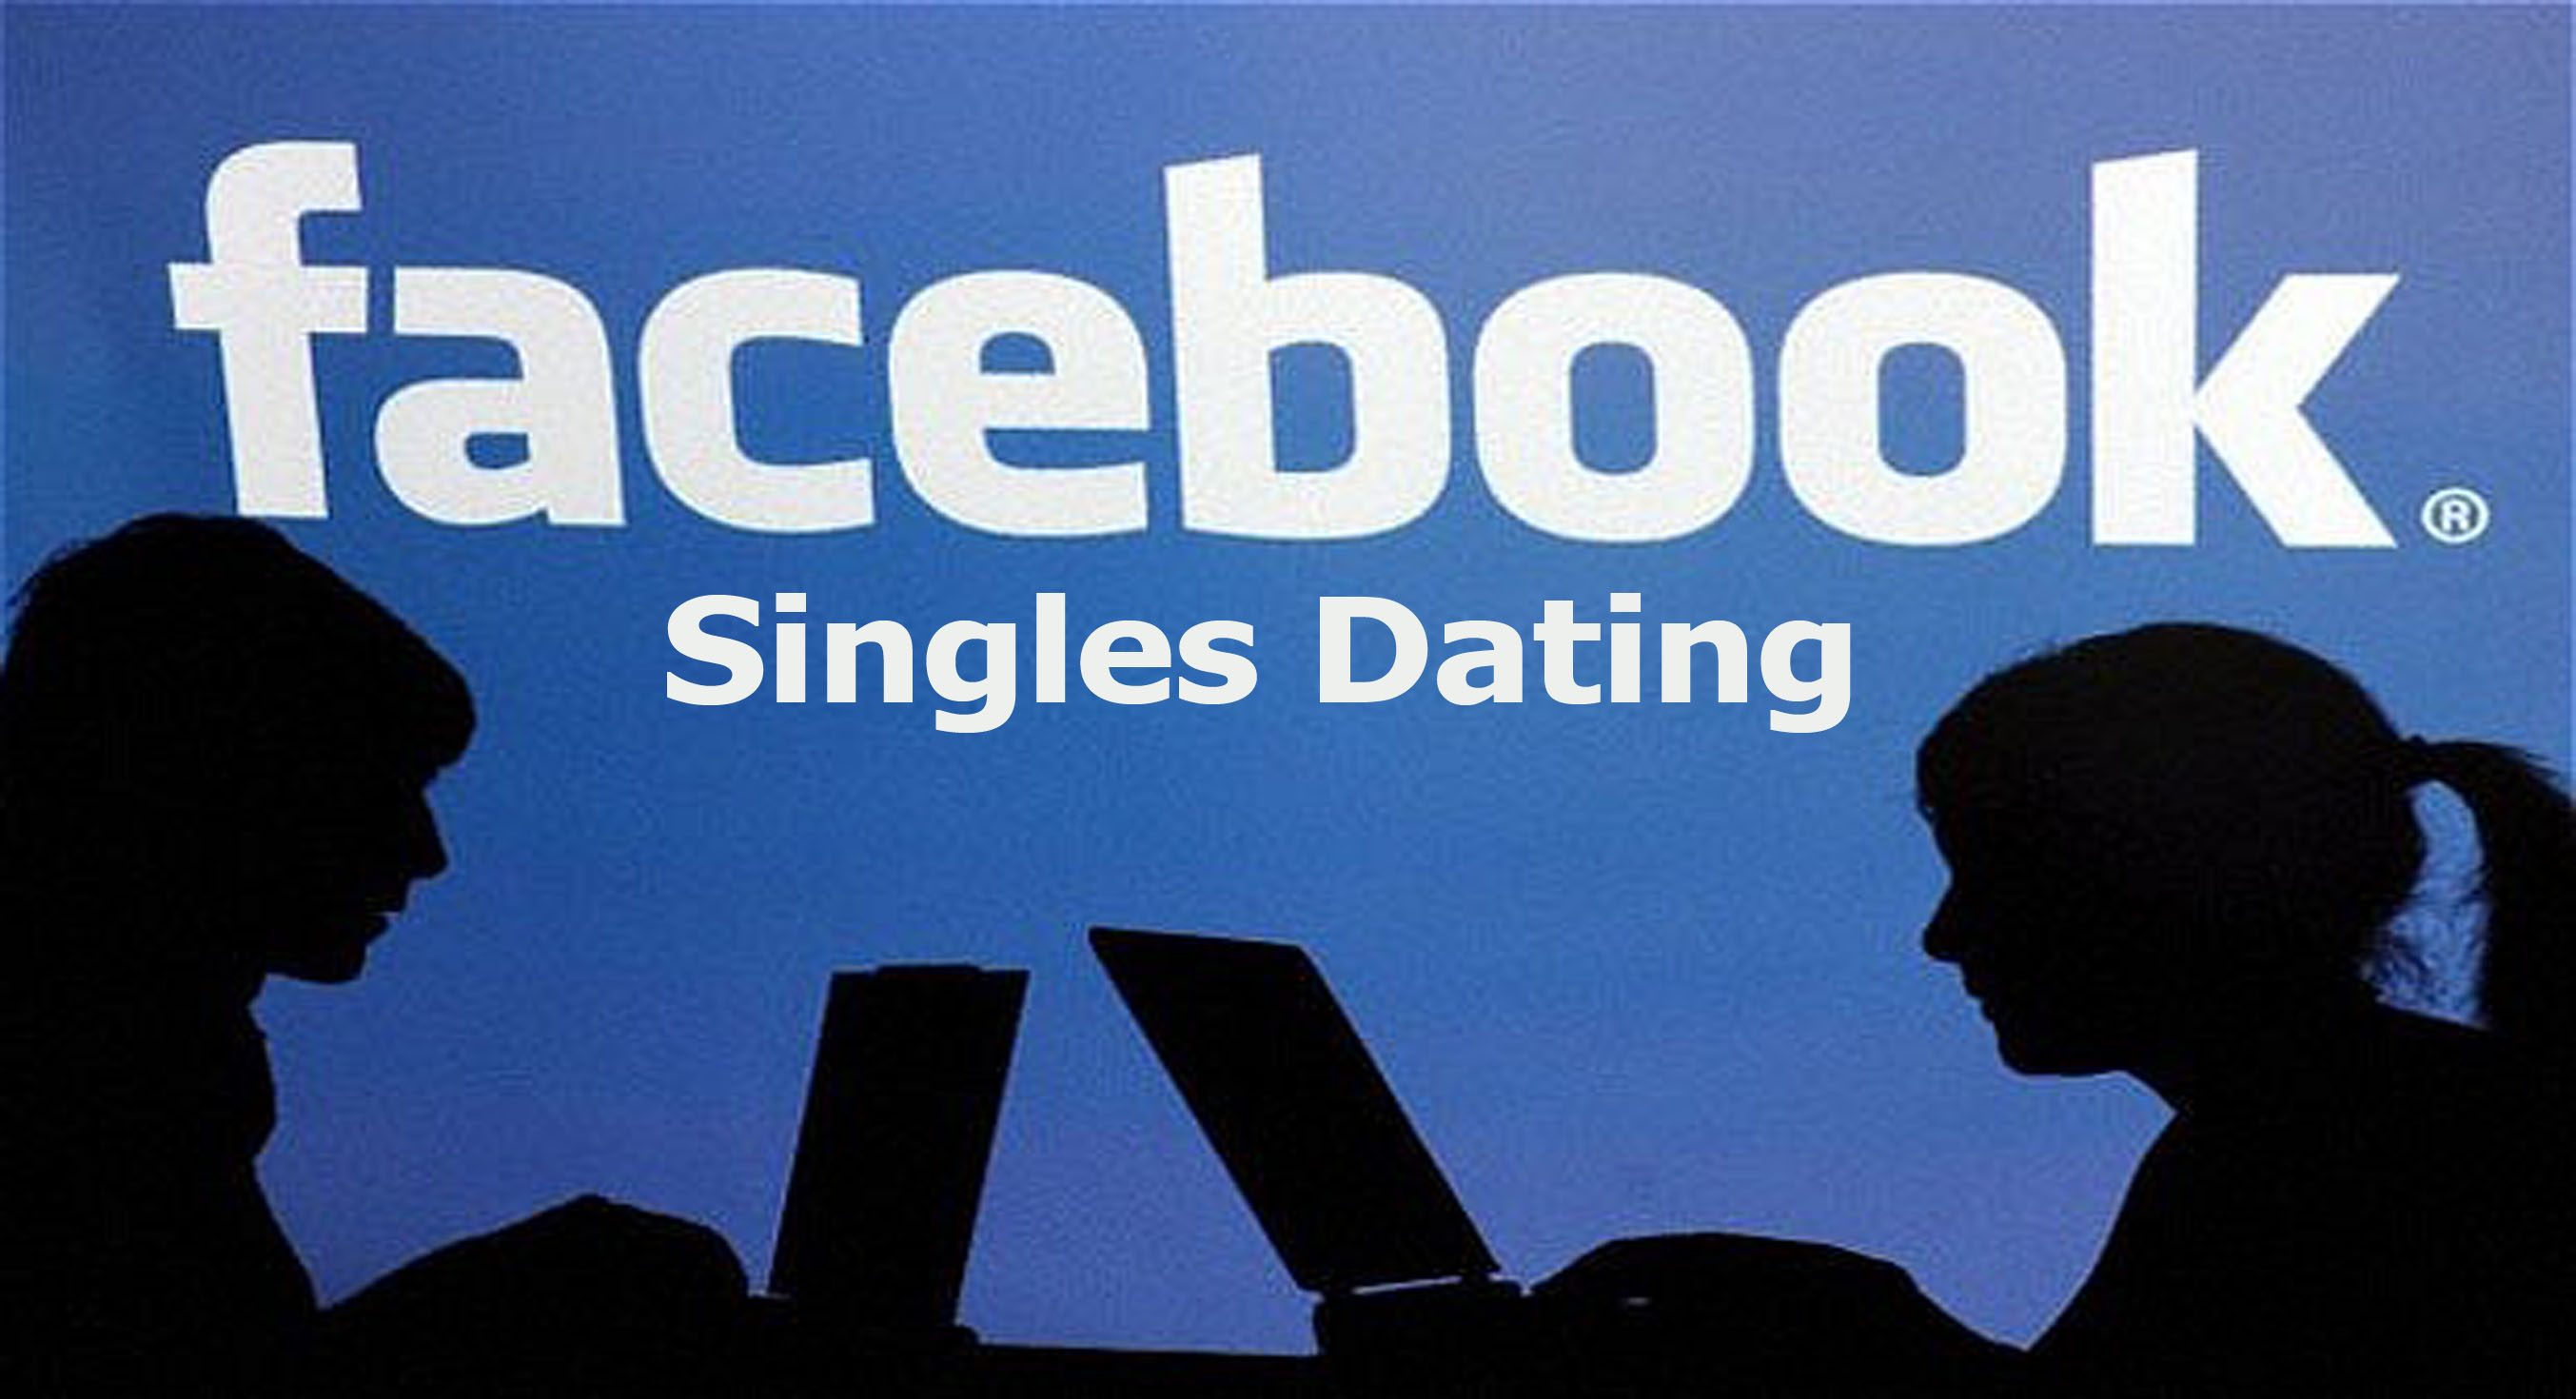 Facebook Singles Dating - How to Find Singles on Facebook